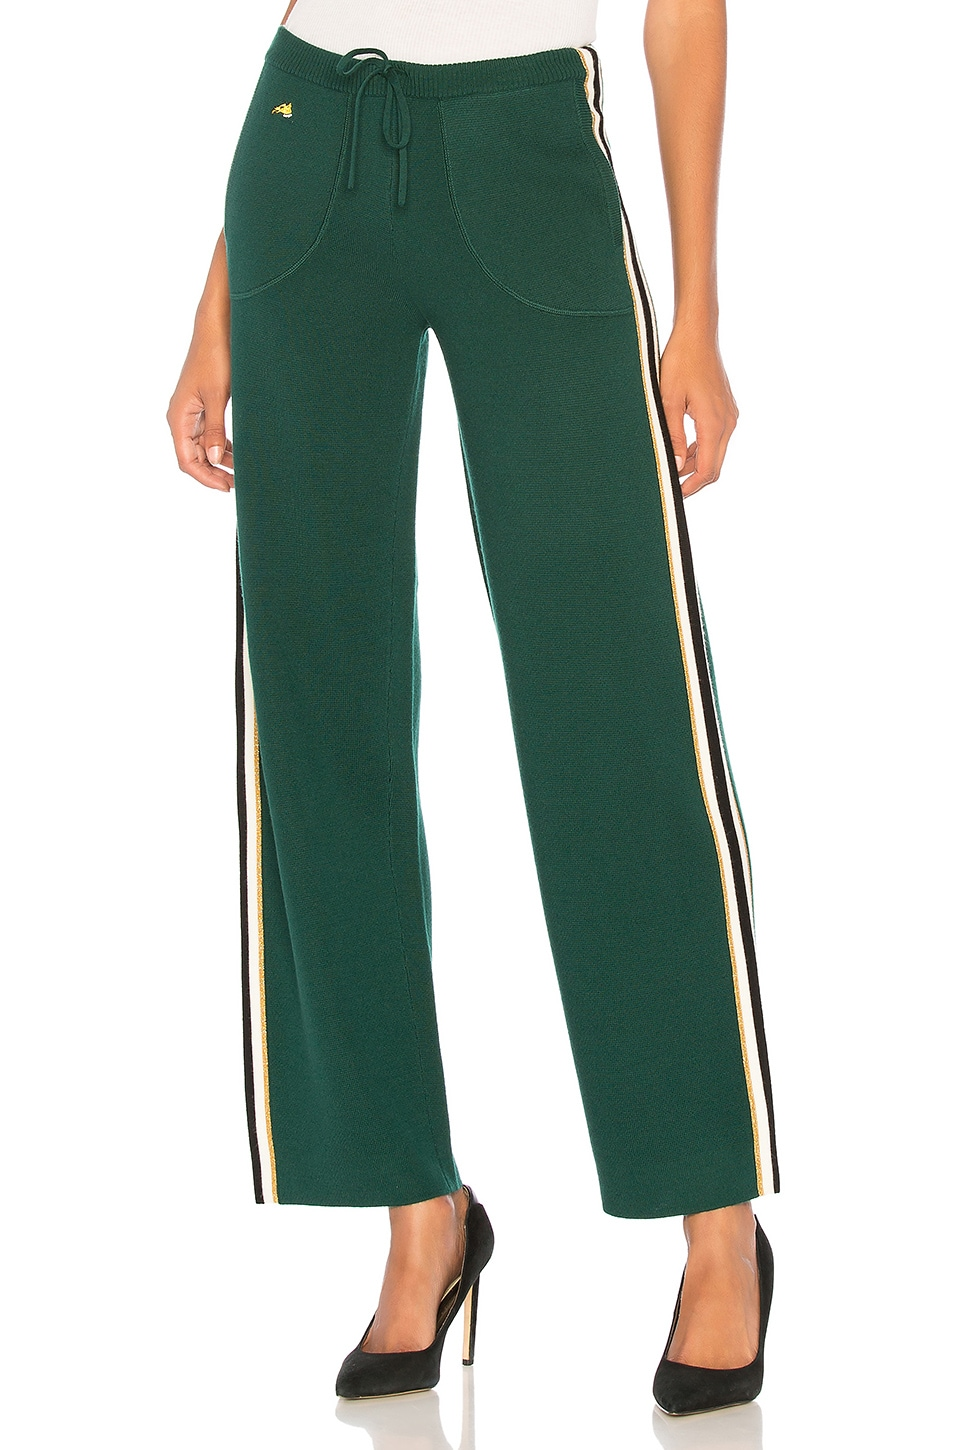 Race Track Pant